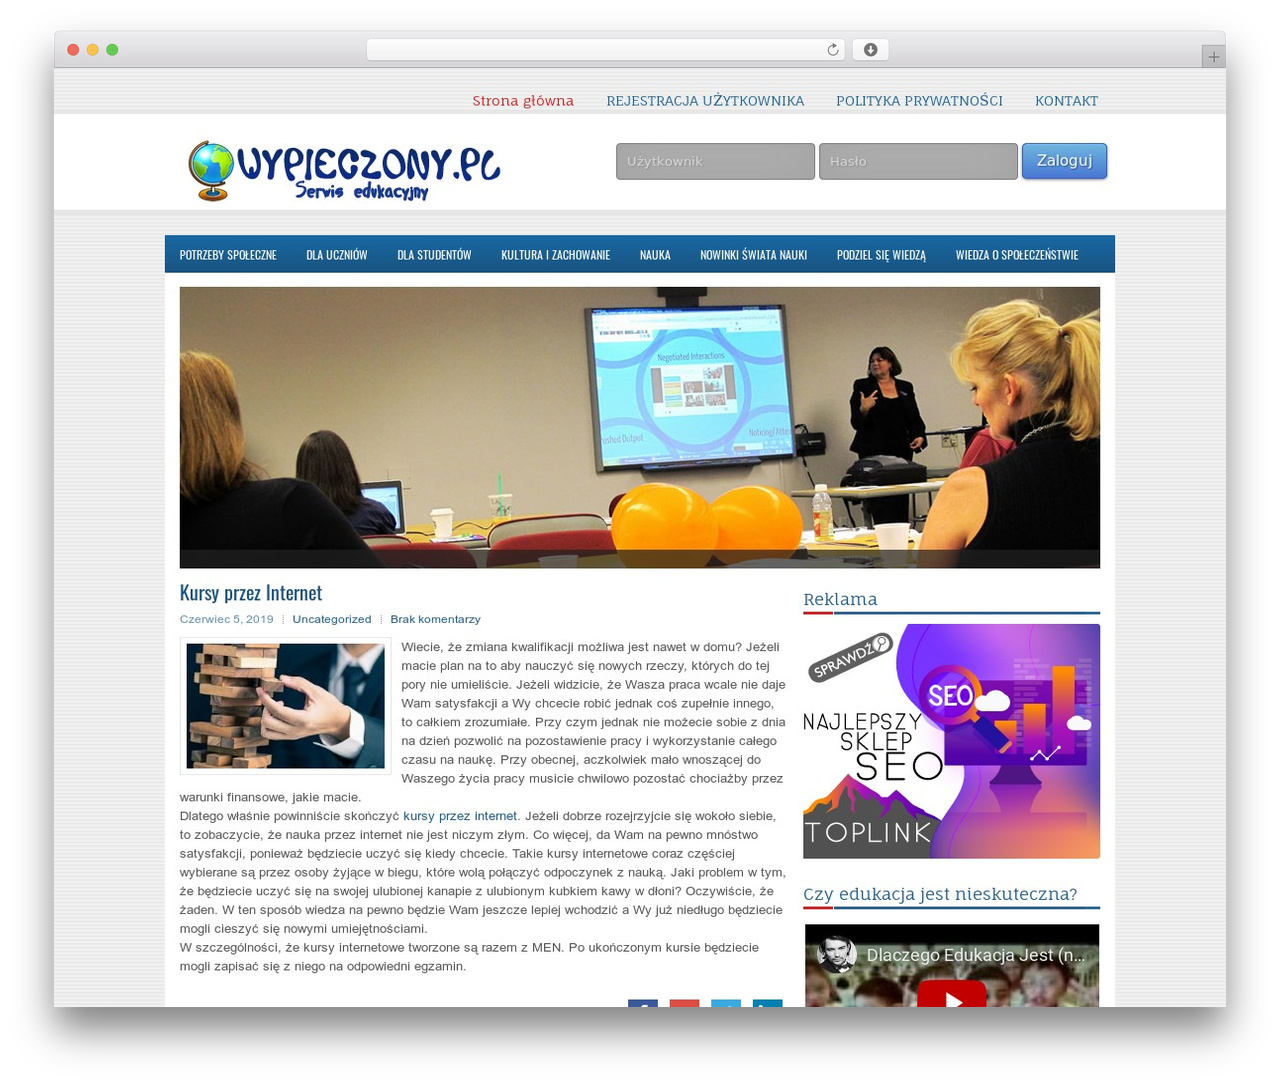 WordPress template EducationPlus - wypieczony.pl